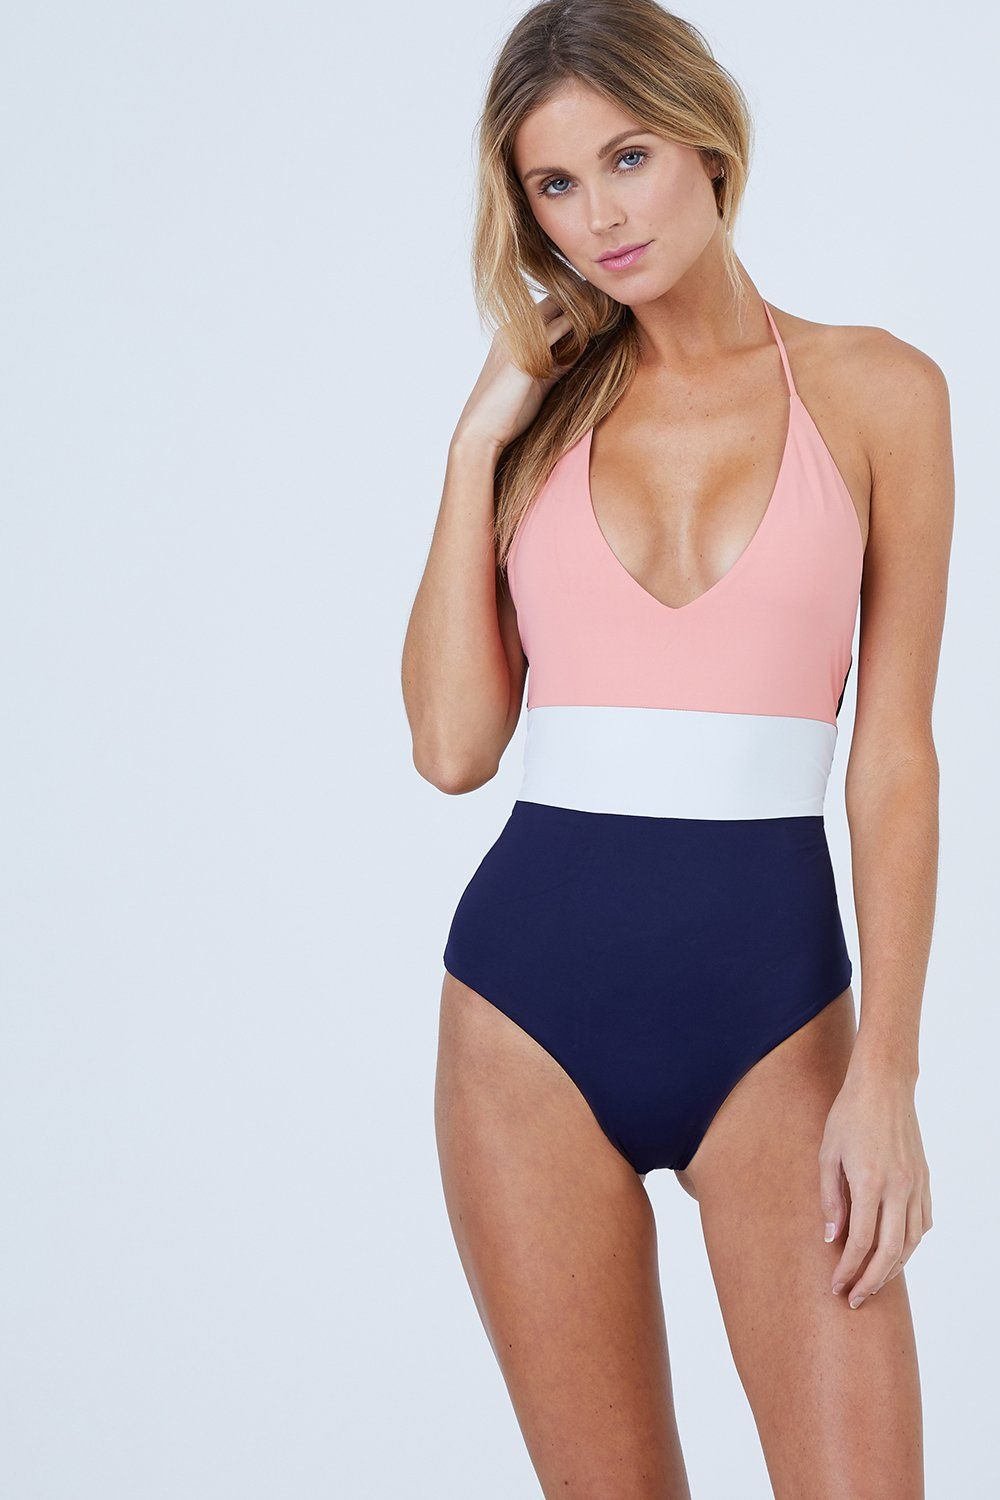 76384b5a5a Chase Reversible One Piece Swimsuit - Coral Color Block   BIKINI.COM